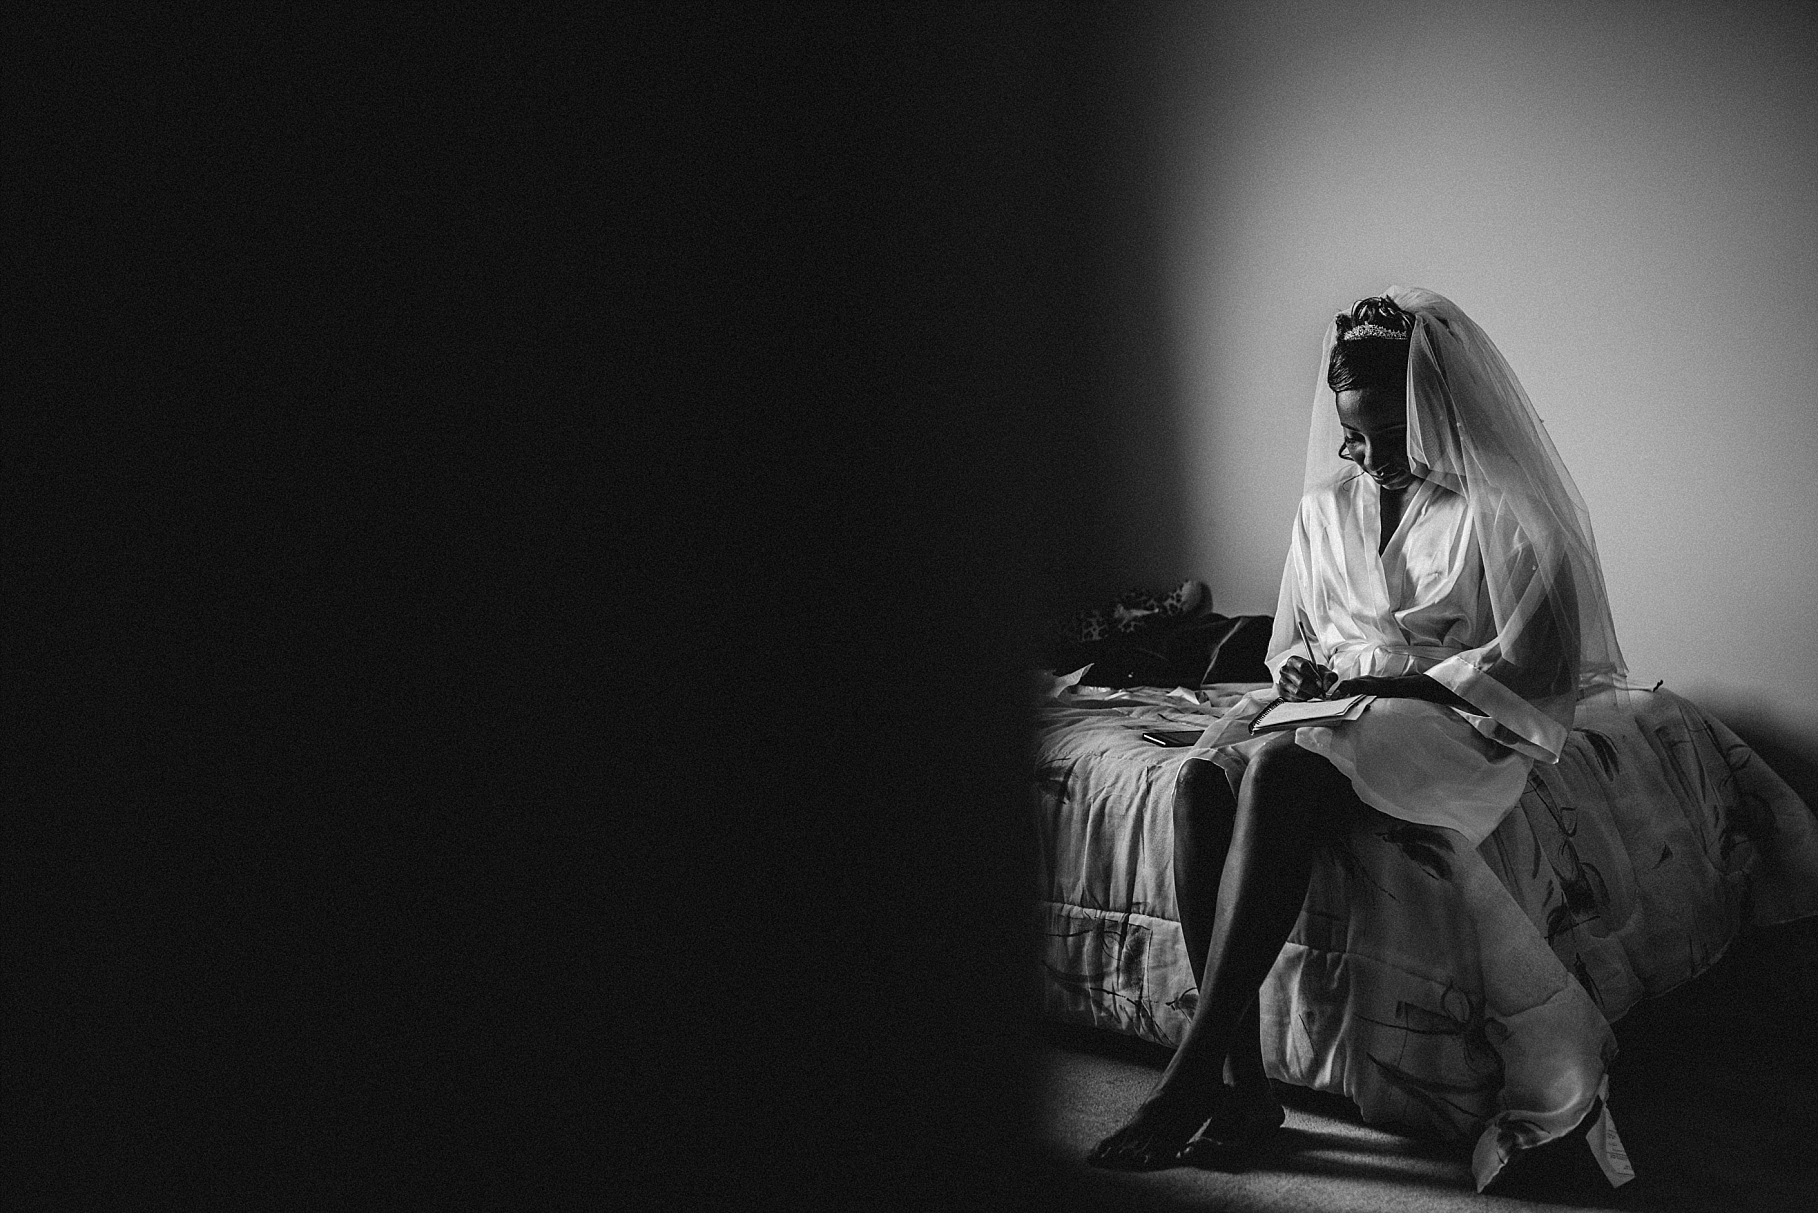 Mocha Tree Studios Ottawa Wedding and Engagement Photographer and Videographer Dark Moody Intimate Authentic Modern Romantic Cinematic Best Candid Wedding Vow